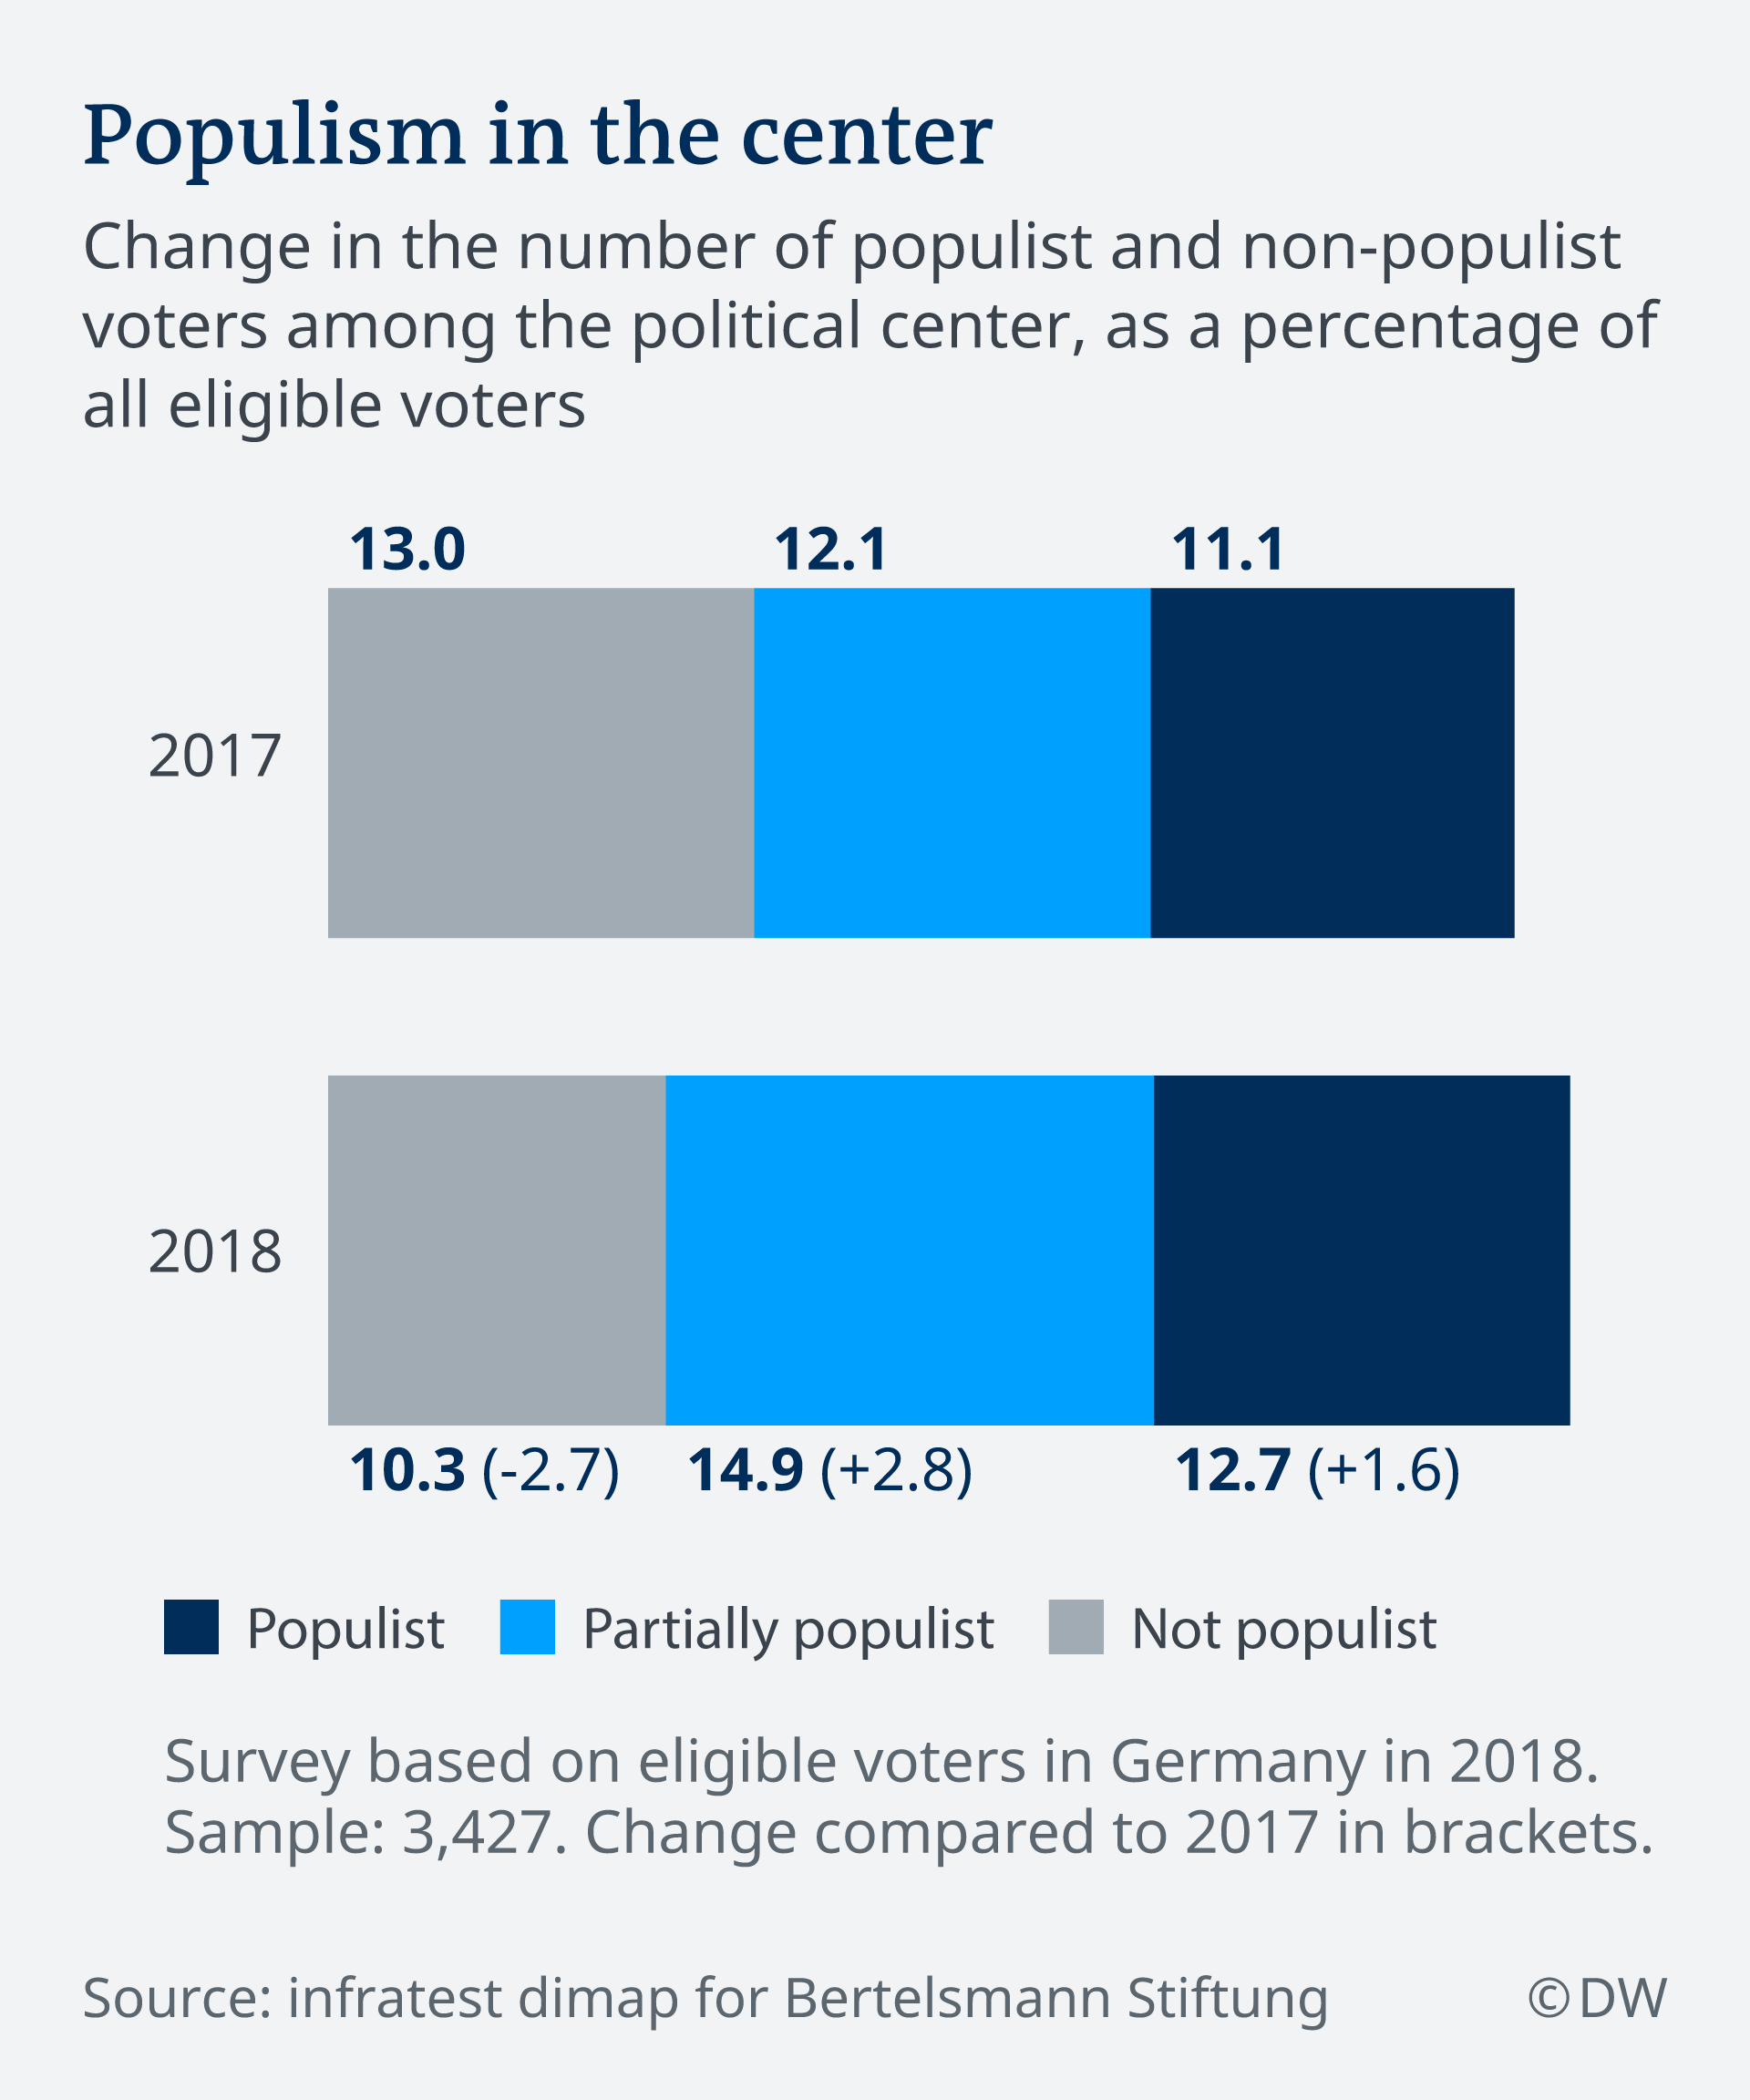 Infographic showing populism in Germany